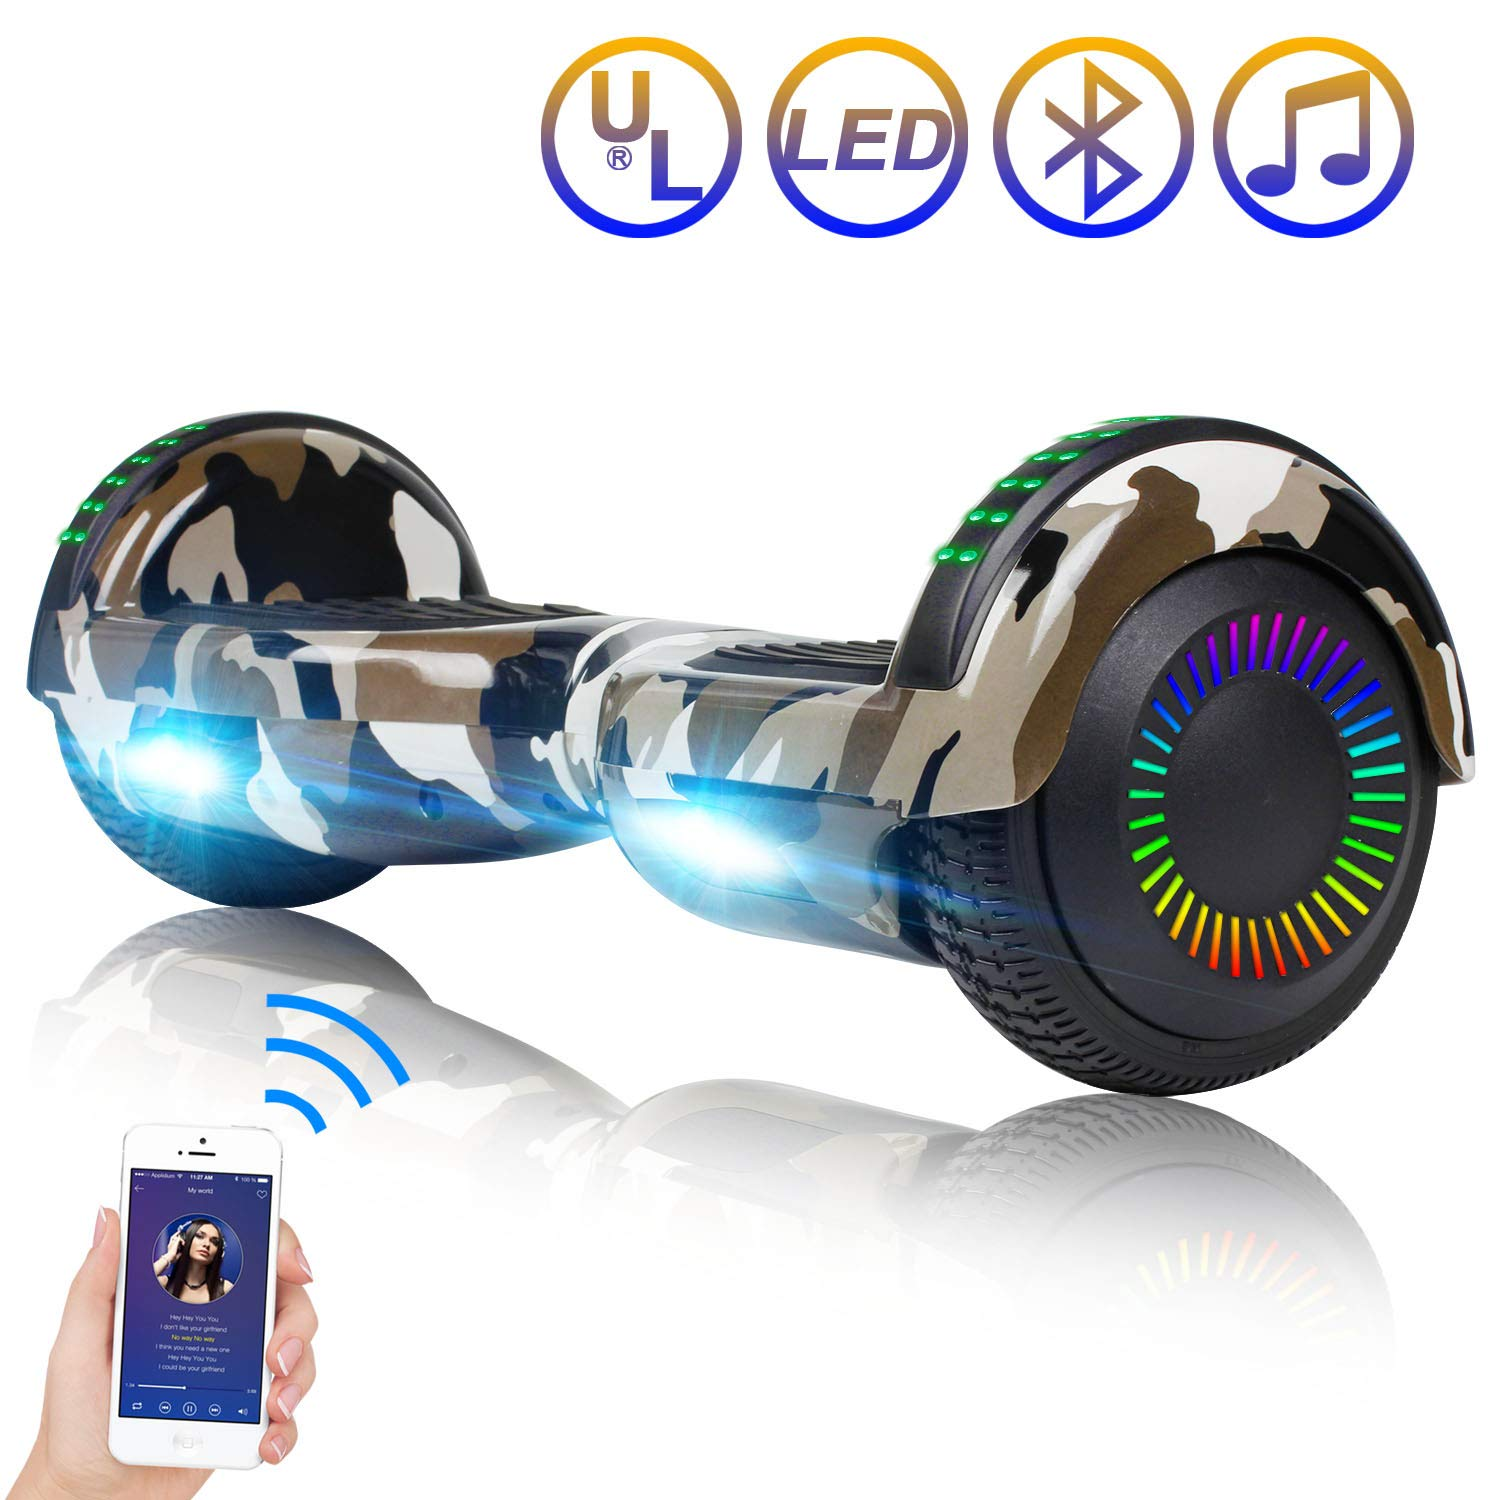 Hoverboard Self Balancing Scooter 6.5'' Two-Wheel Self Balancing Hoverboard with Bluetooth Speaker and LED Lights Electric Scooter for Adult Kids Gift UL 2272 Certified Fun Edition - Desert Camo by SISIGAD (Image #1)